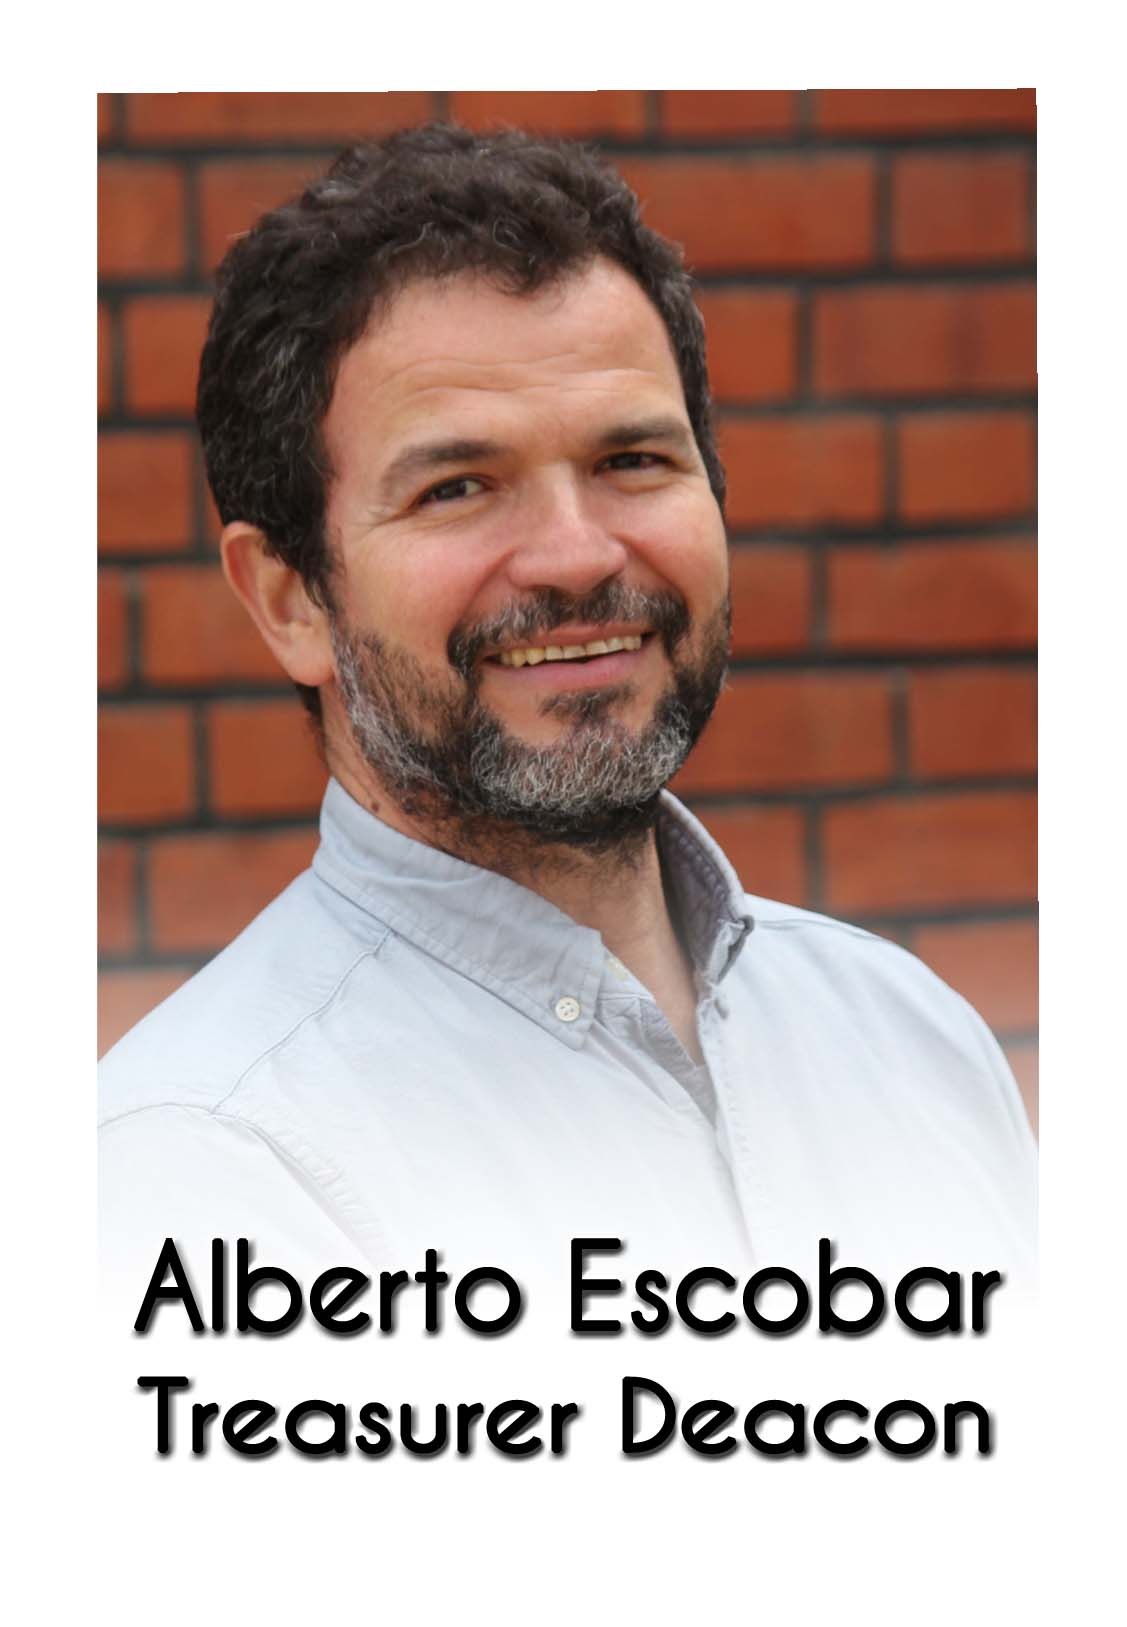 Alberto Escobar labelled